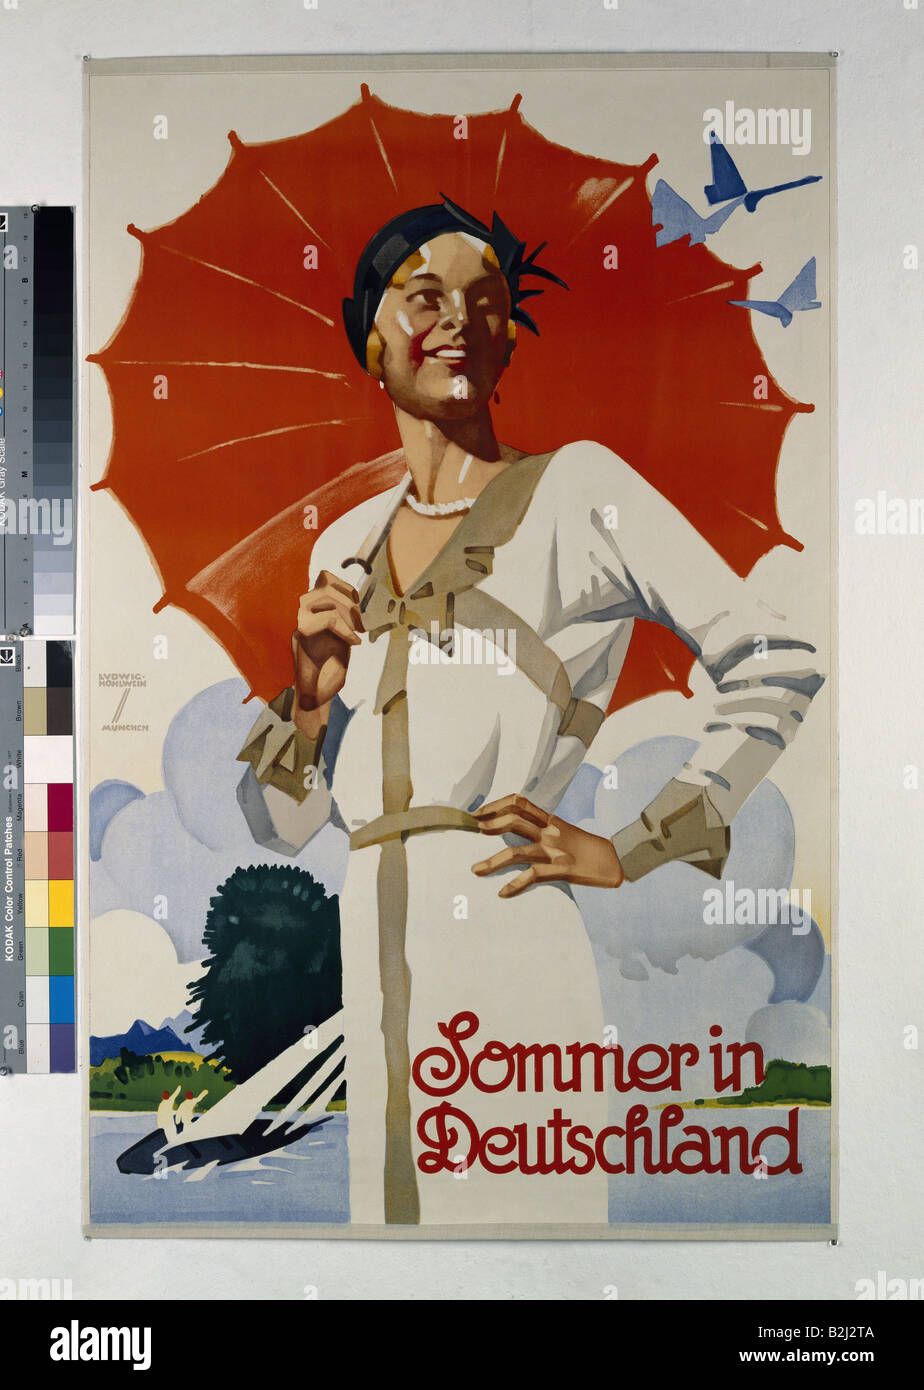 Poster design 1920s - Stock Photo Advertising Tourism Sommer In Deutschland 1920s 20s Poster Design By Ludwig Hohlwein 1874 1949 Fine Arts Summer